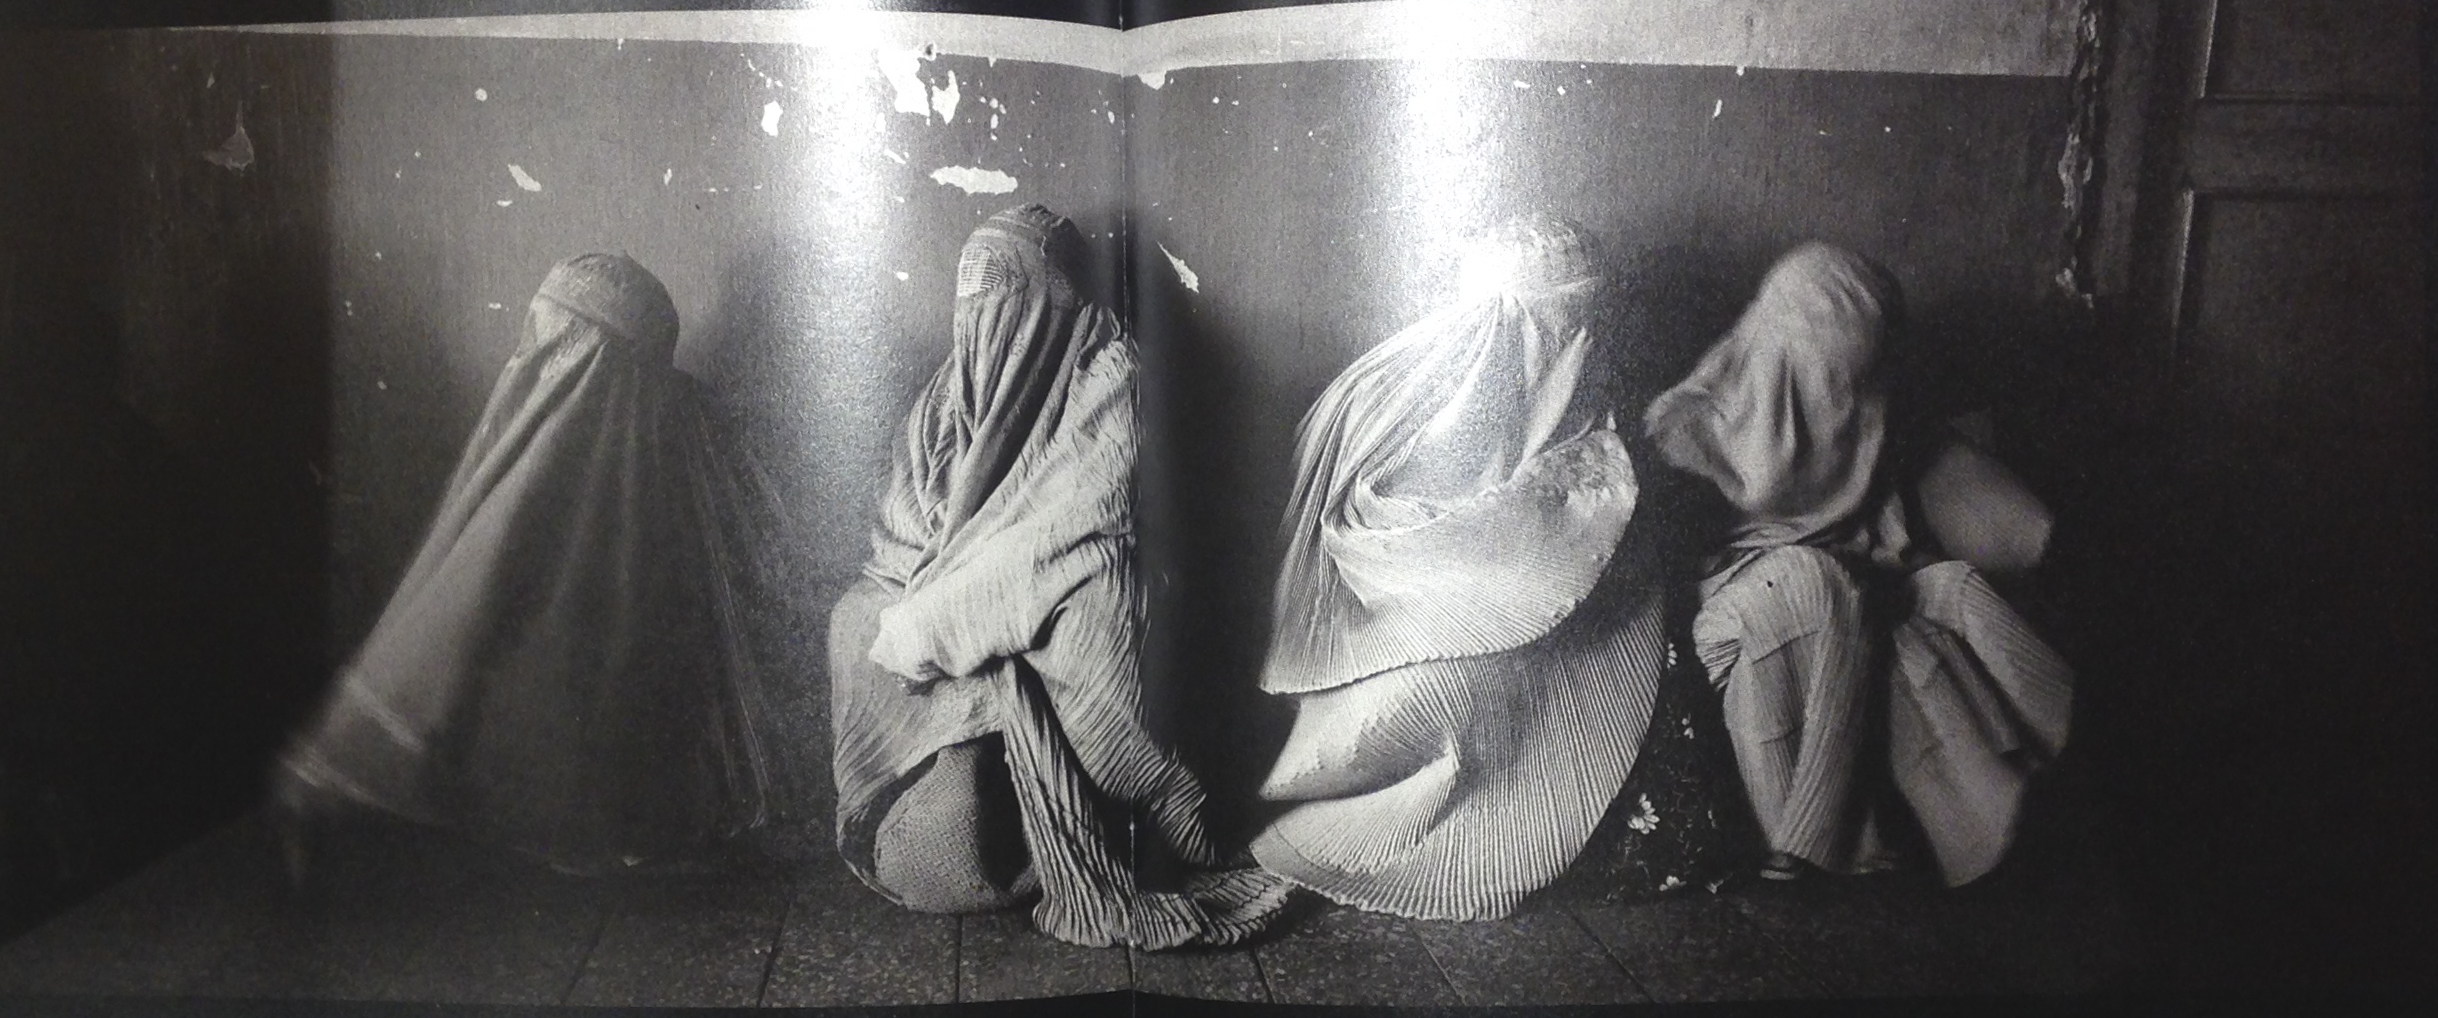 """XPan shot from the book """"Generation AK"""" by Stephen Dupont"""